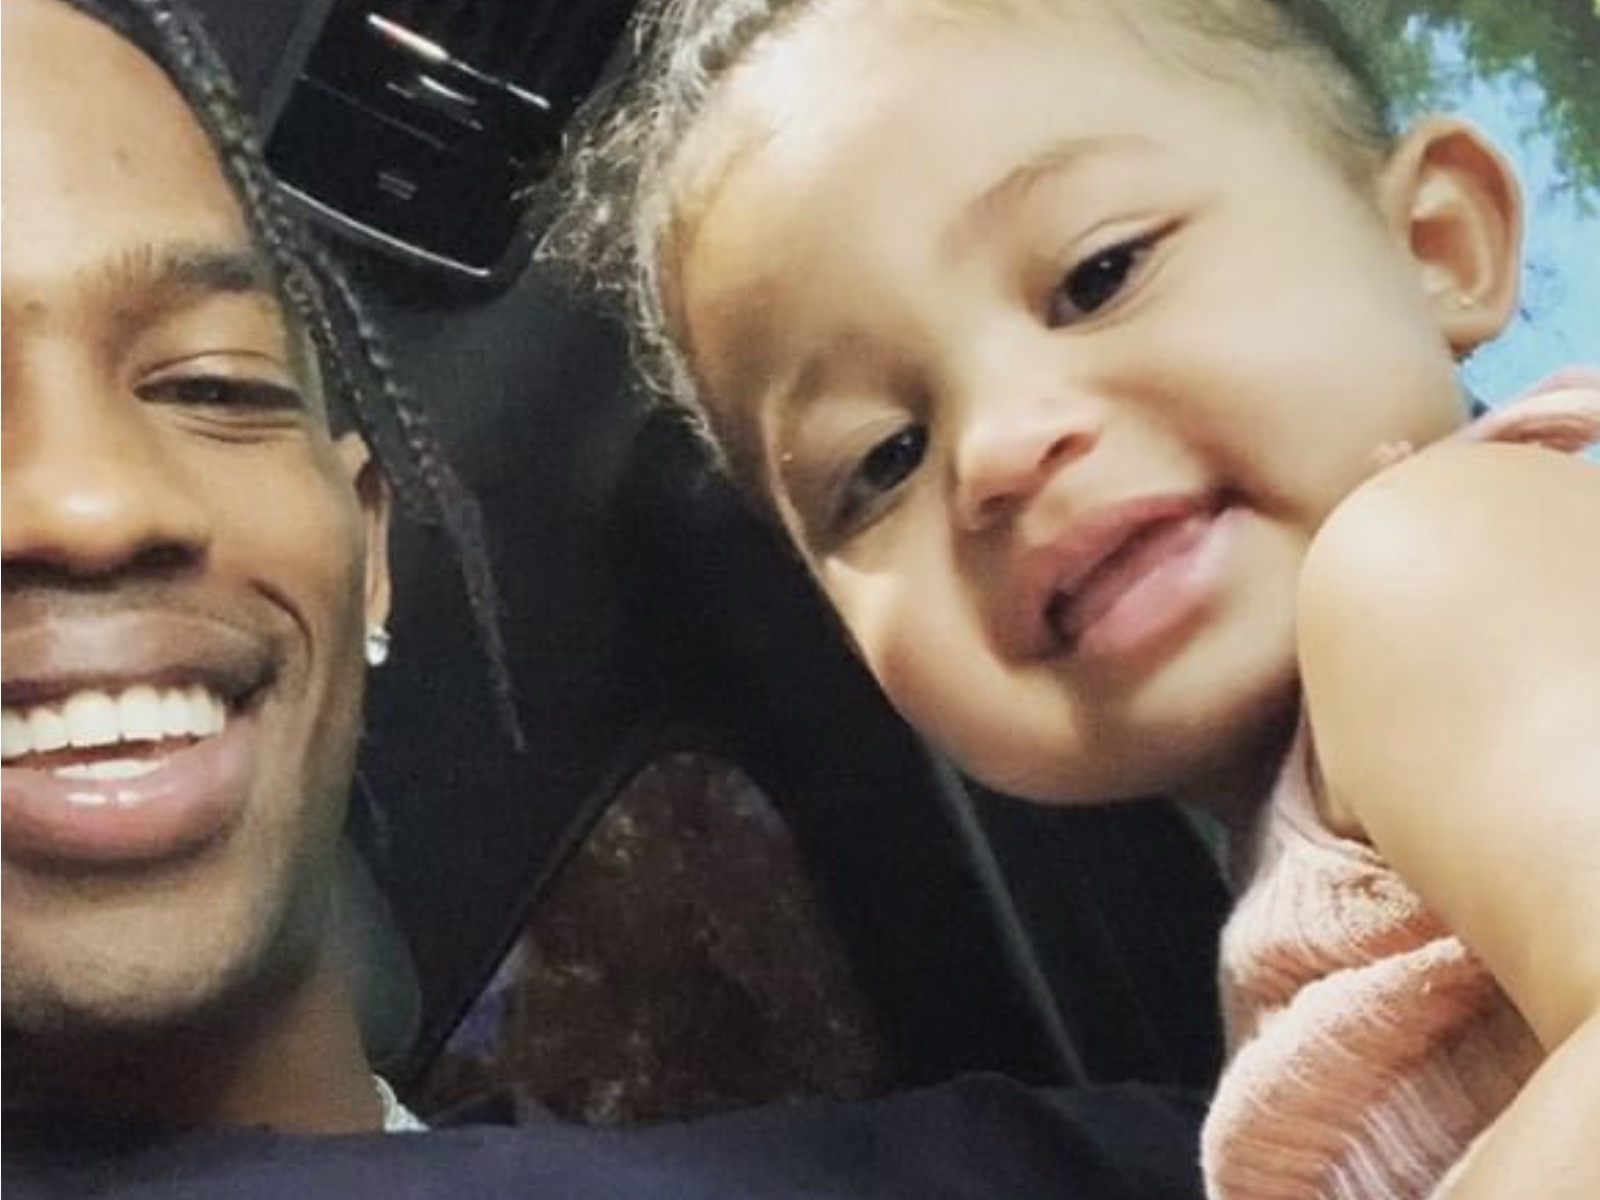 588bf06a28ba KUWK: Kylie Jenner's 1-Year-Old Daughter Stormi Webster Is Shown Talking In  Adorable Clip Featuring Her Dad, Travis Scott!